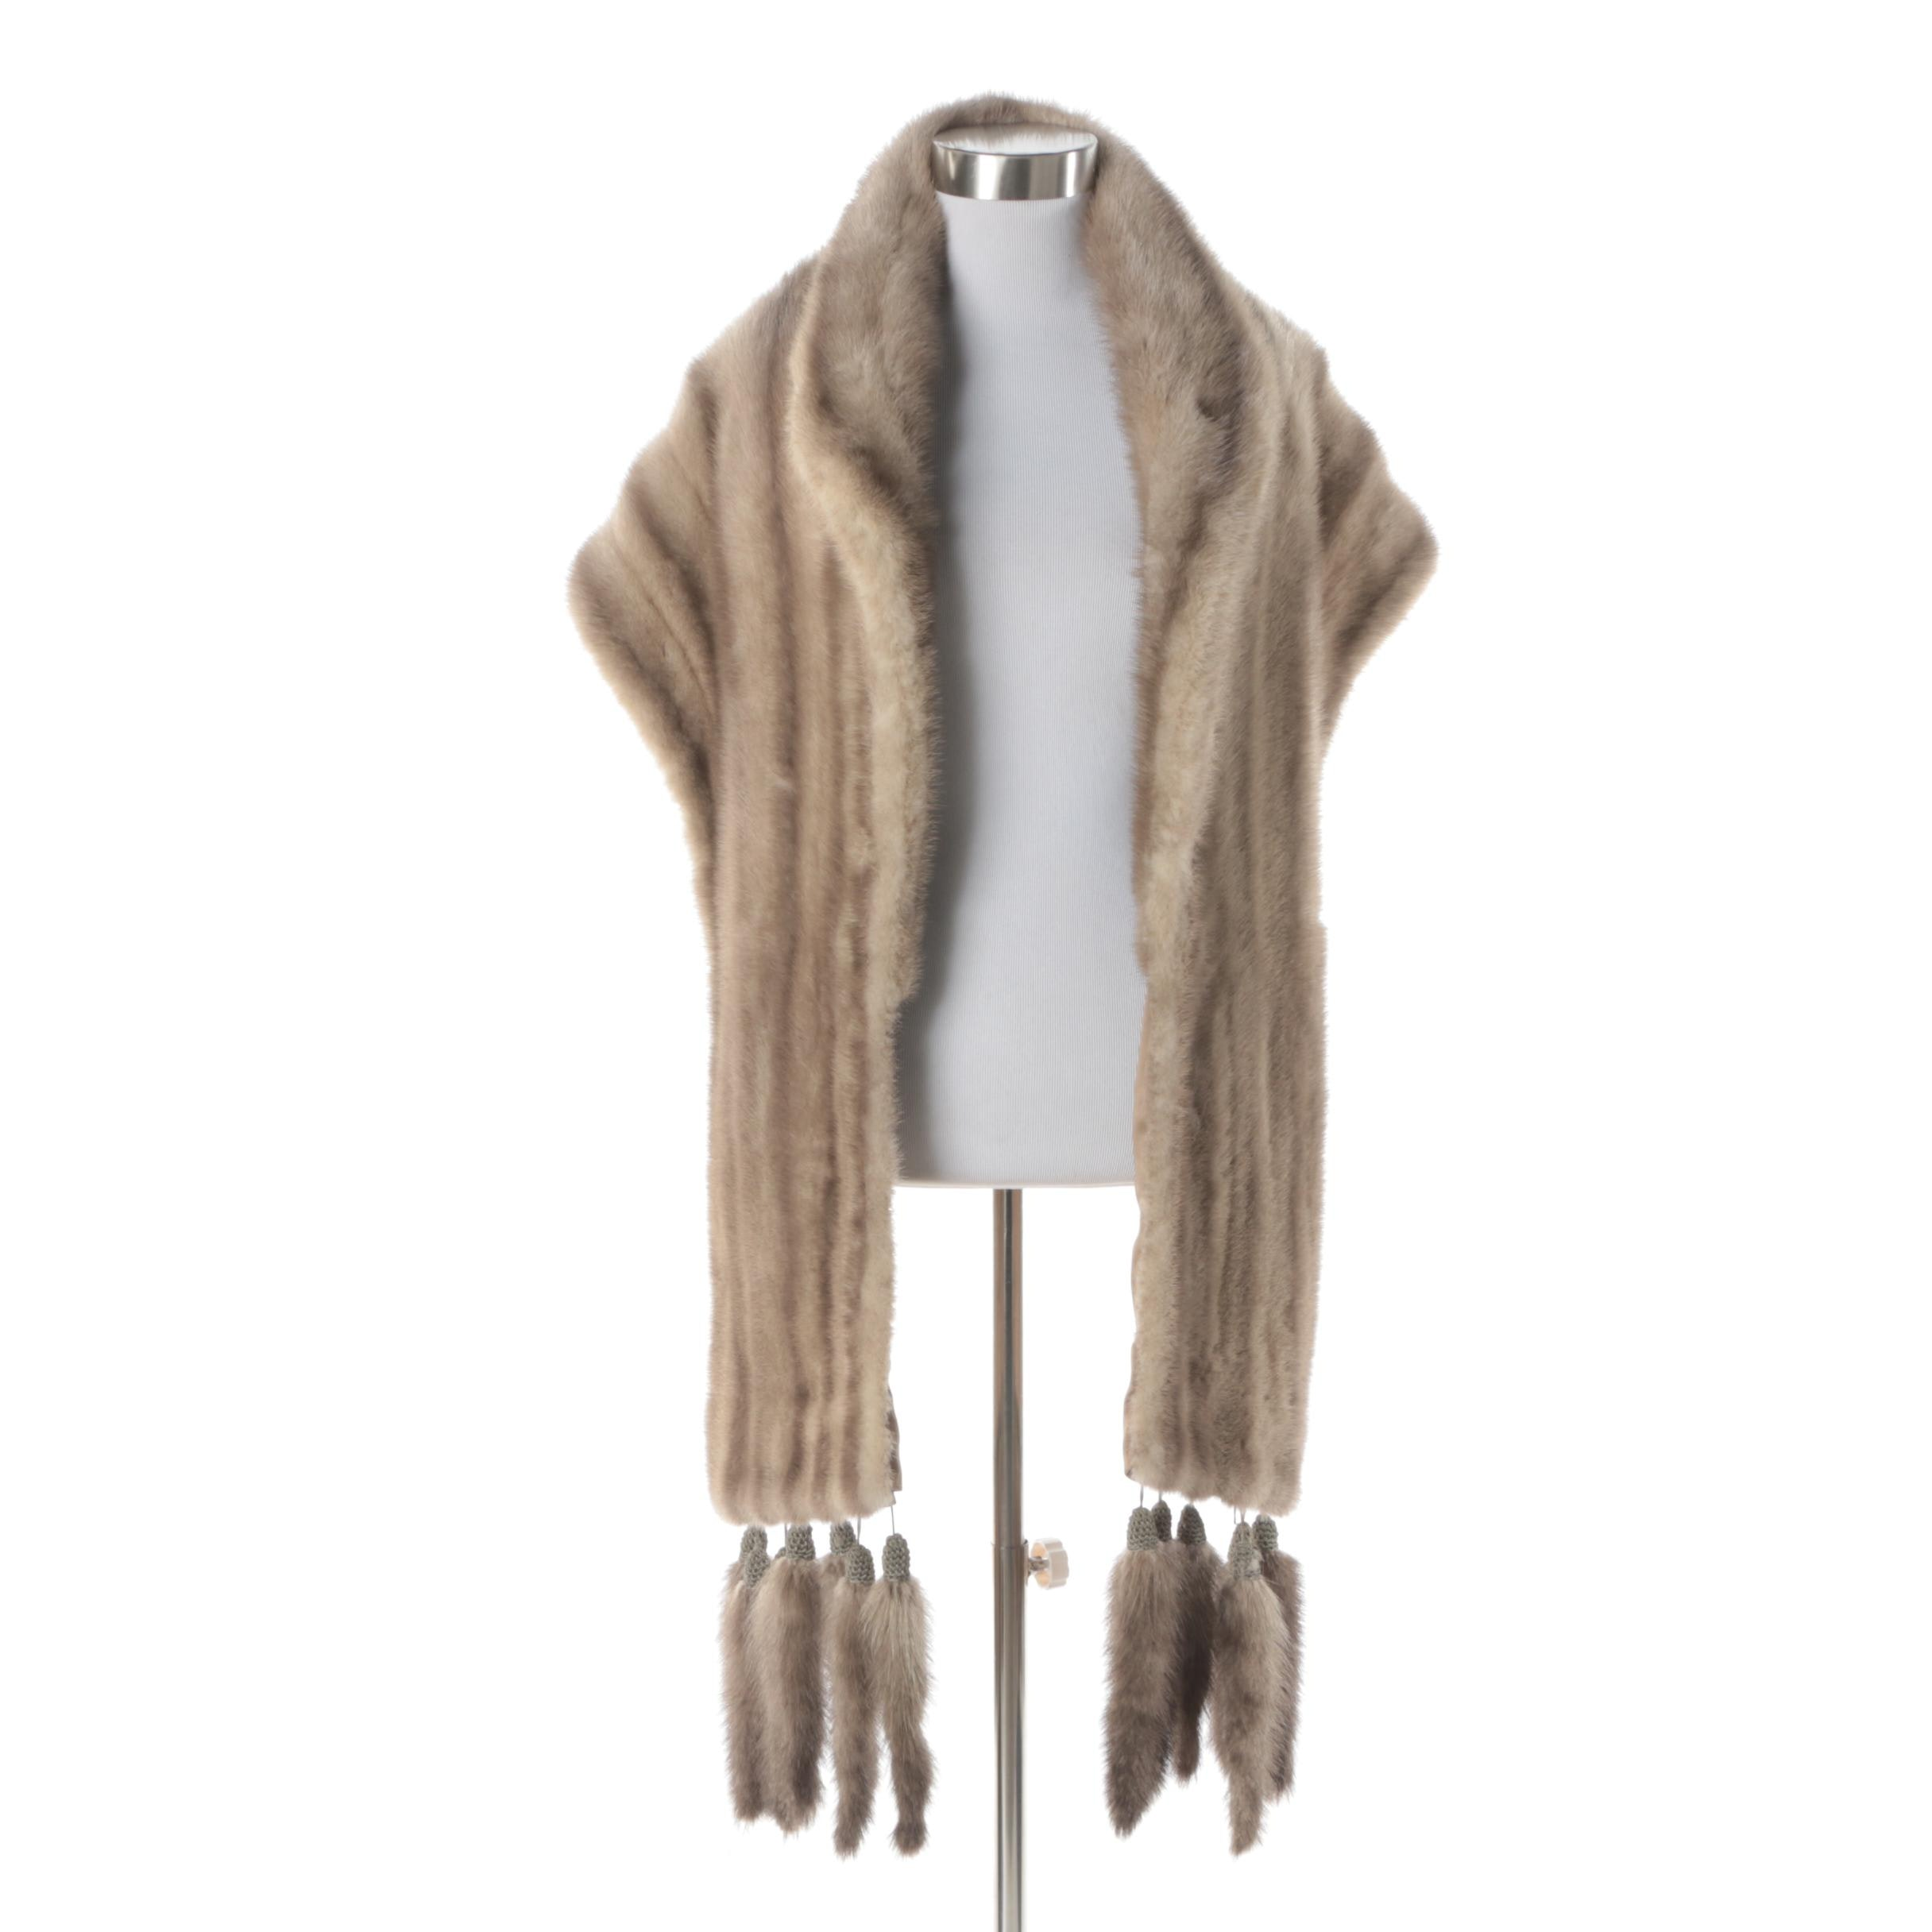 Silver Mink Fur Stole with Detachable Mink Tails